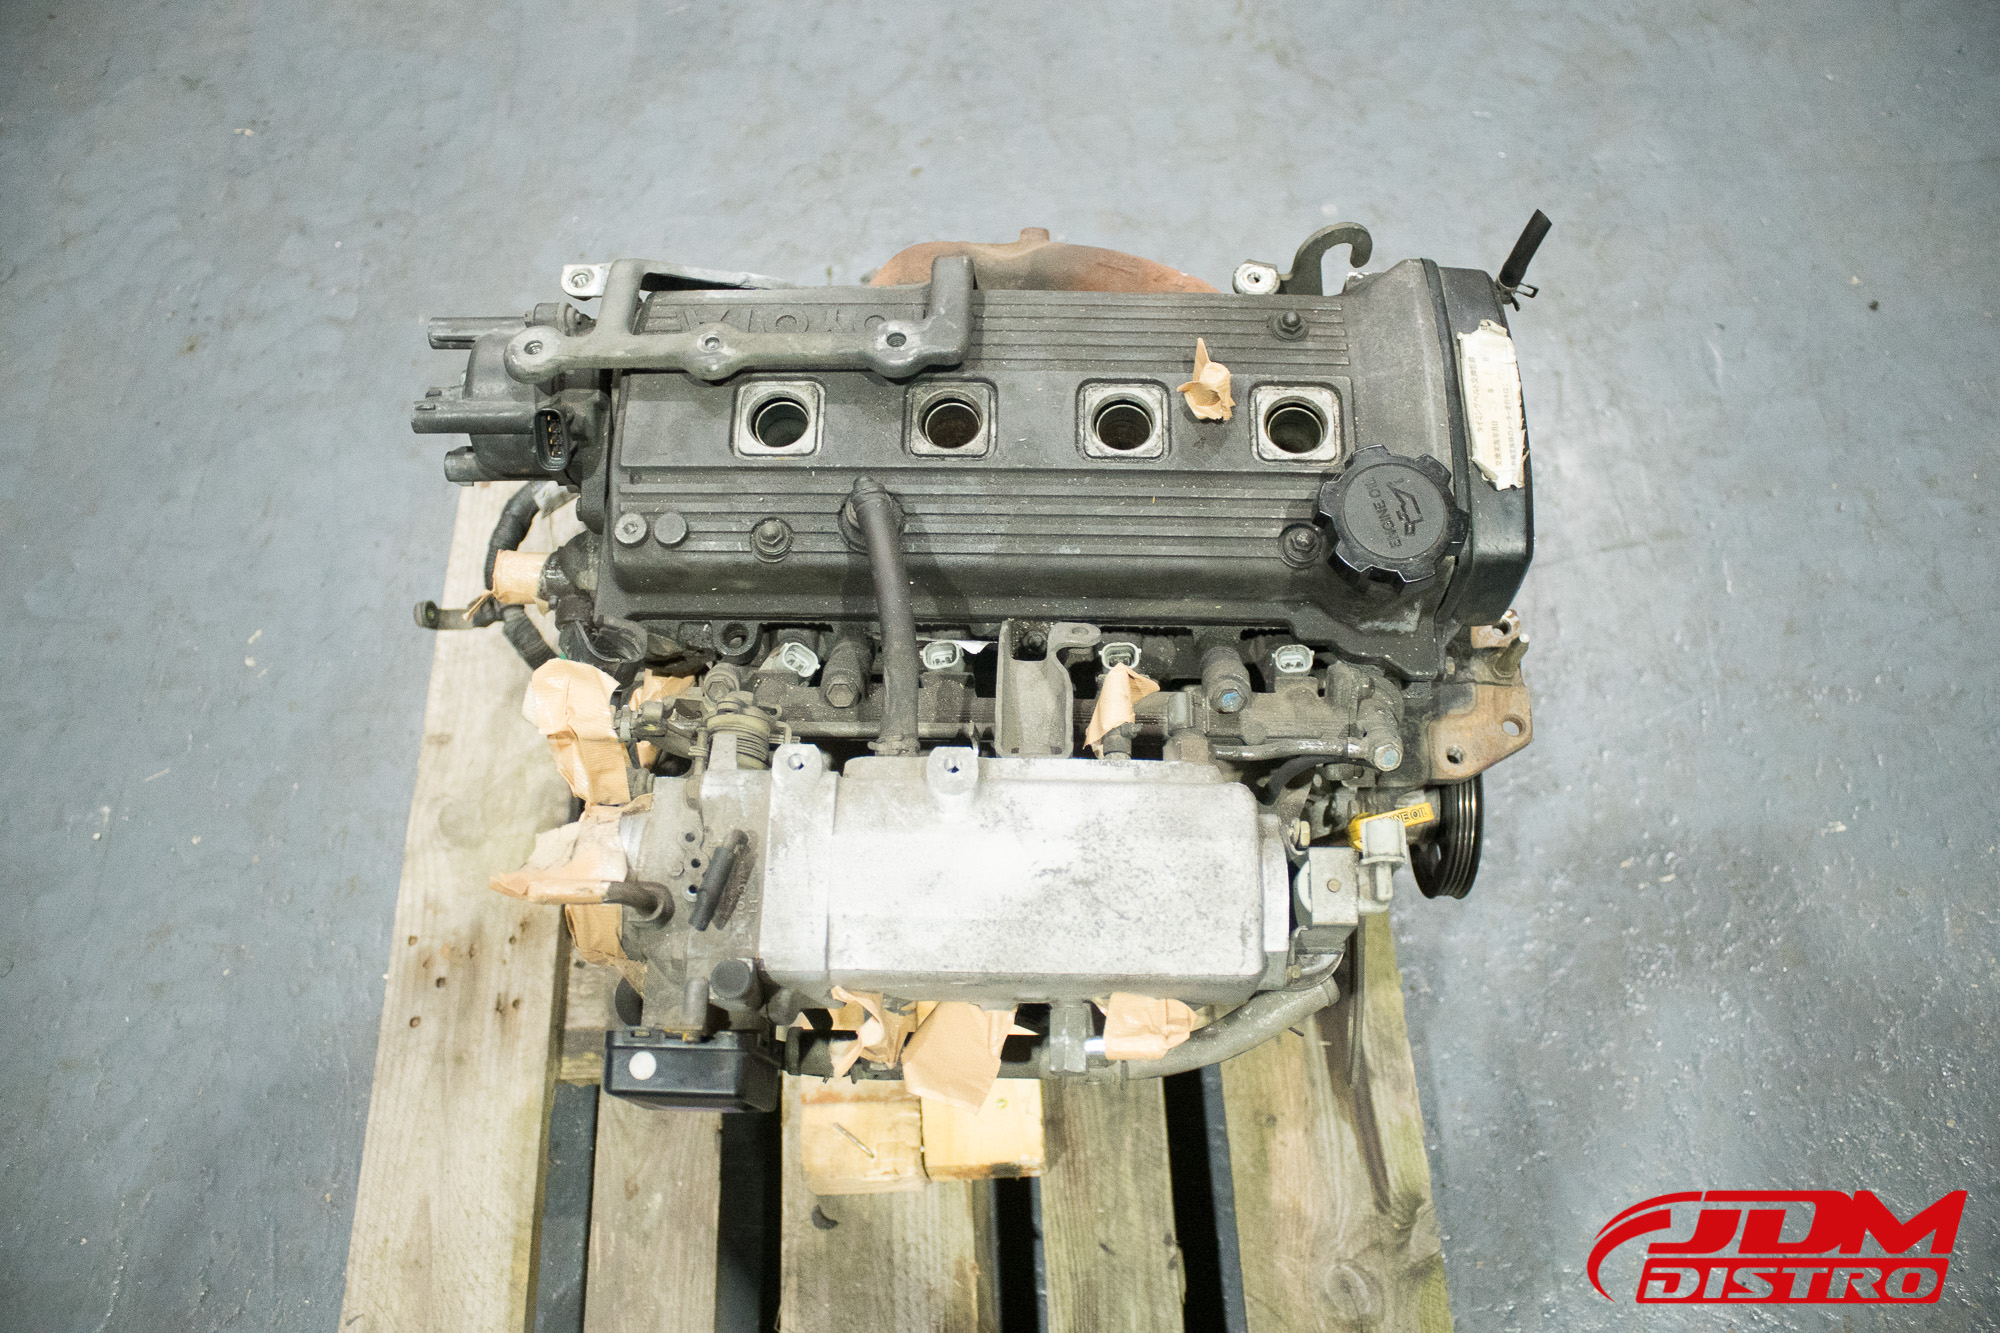 Toyota Starlet Glanza Turbo Ep91 Ep82 4efte Engine Jdmdistro Buy Jdm Parts Online Worldwide Shipping